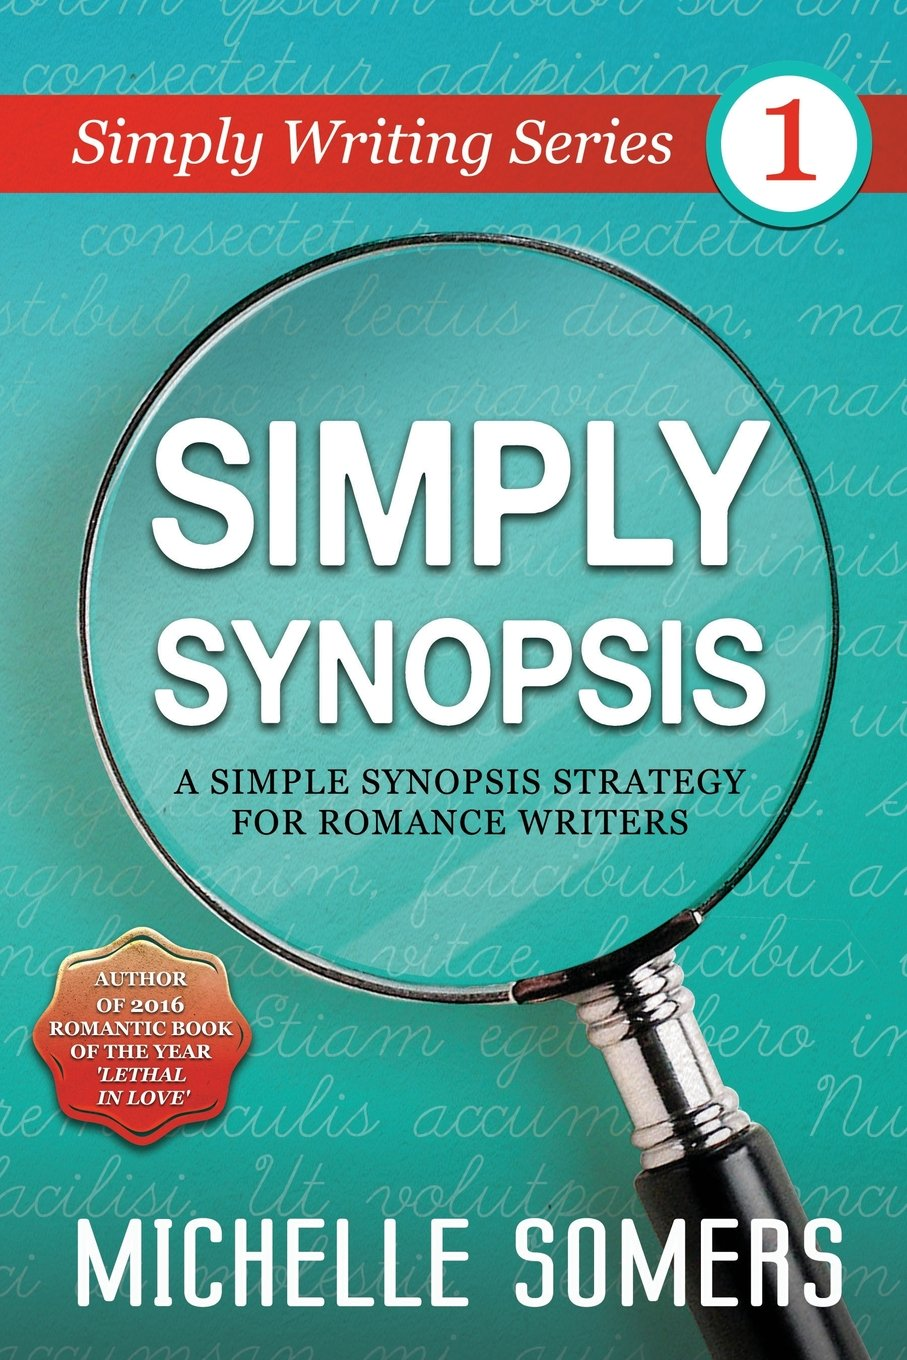 Simply Synopsis (Simply Writing Series) by Michelle Somers Pty Ltd